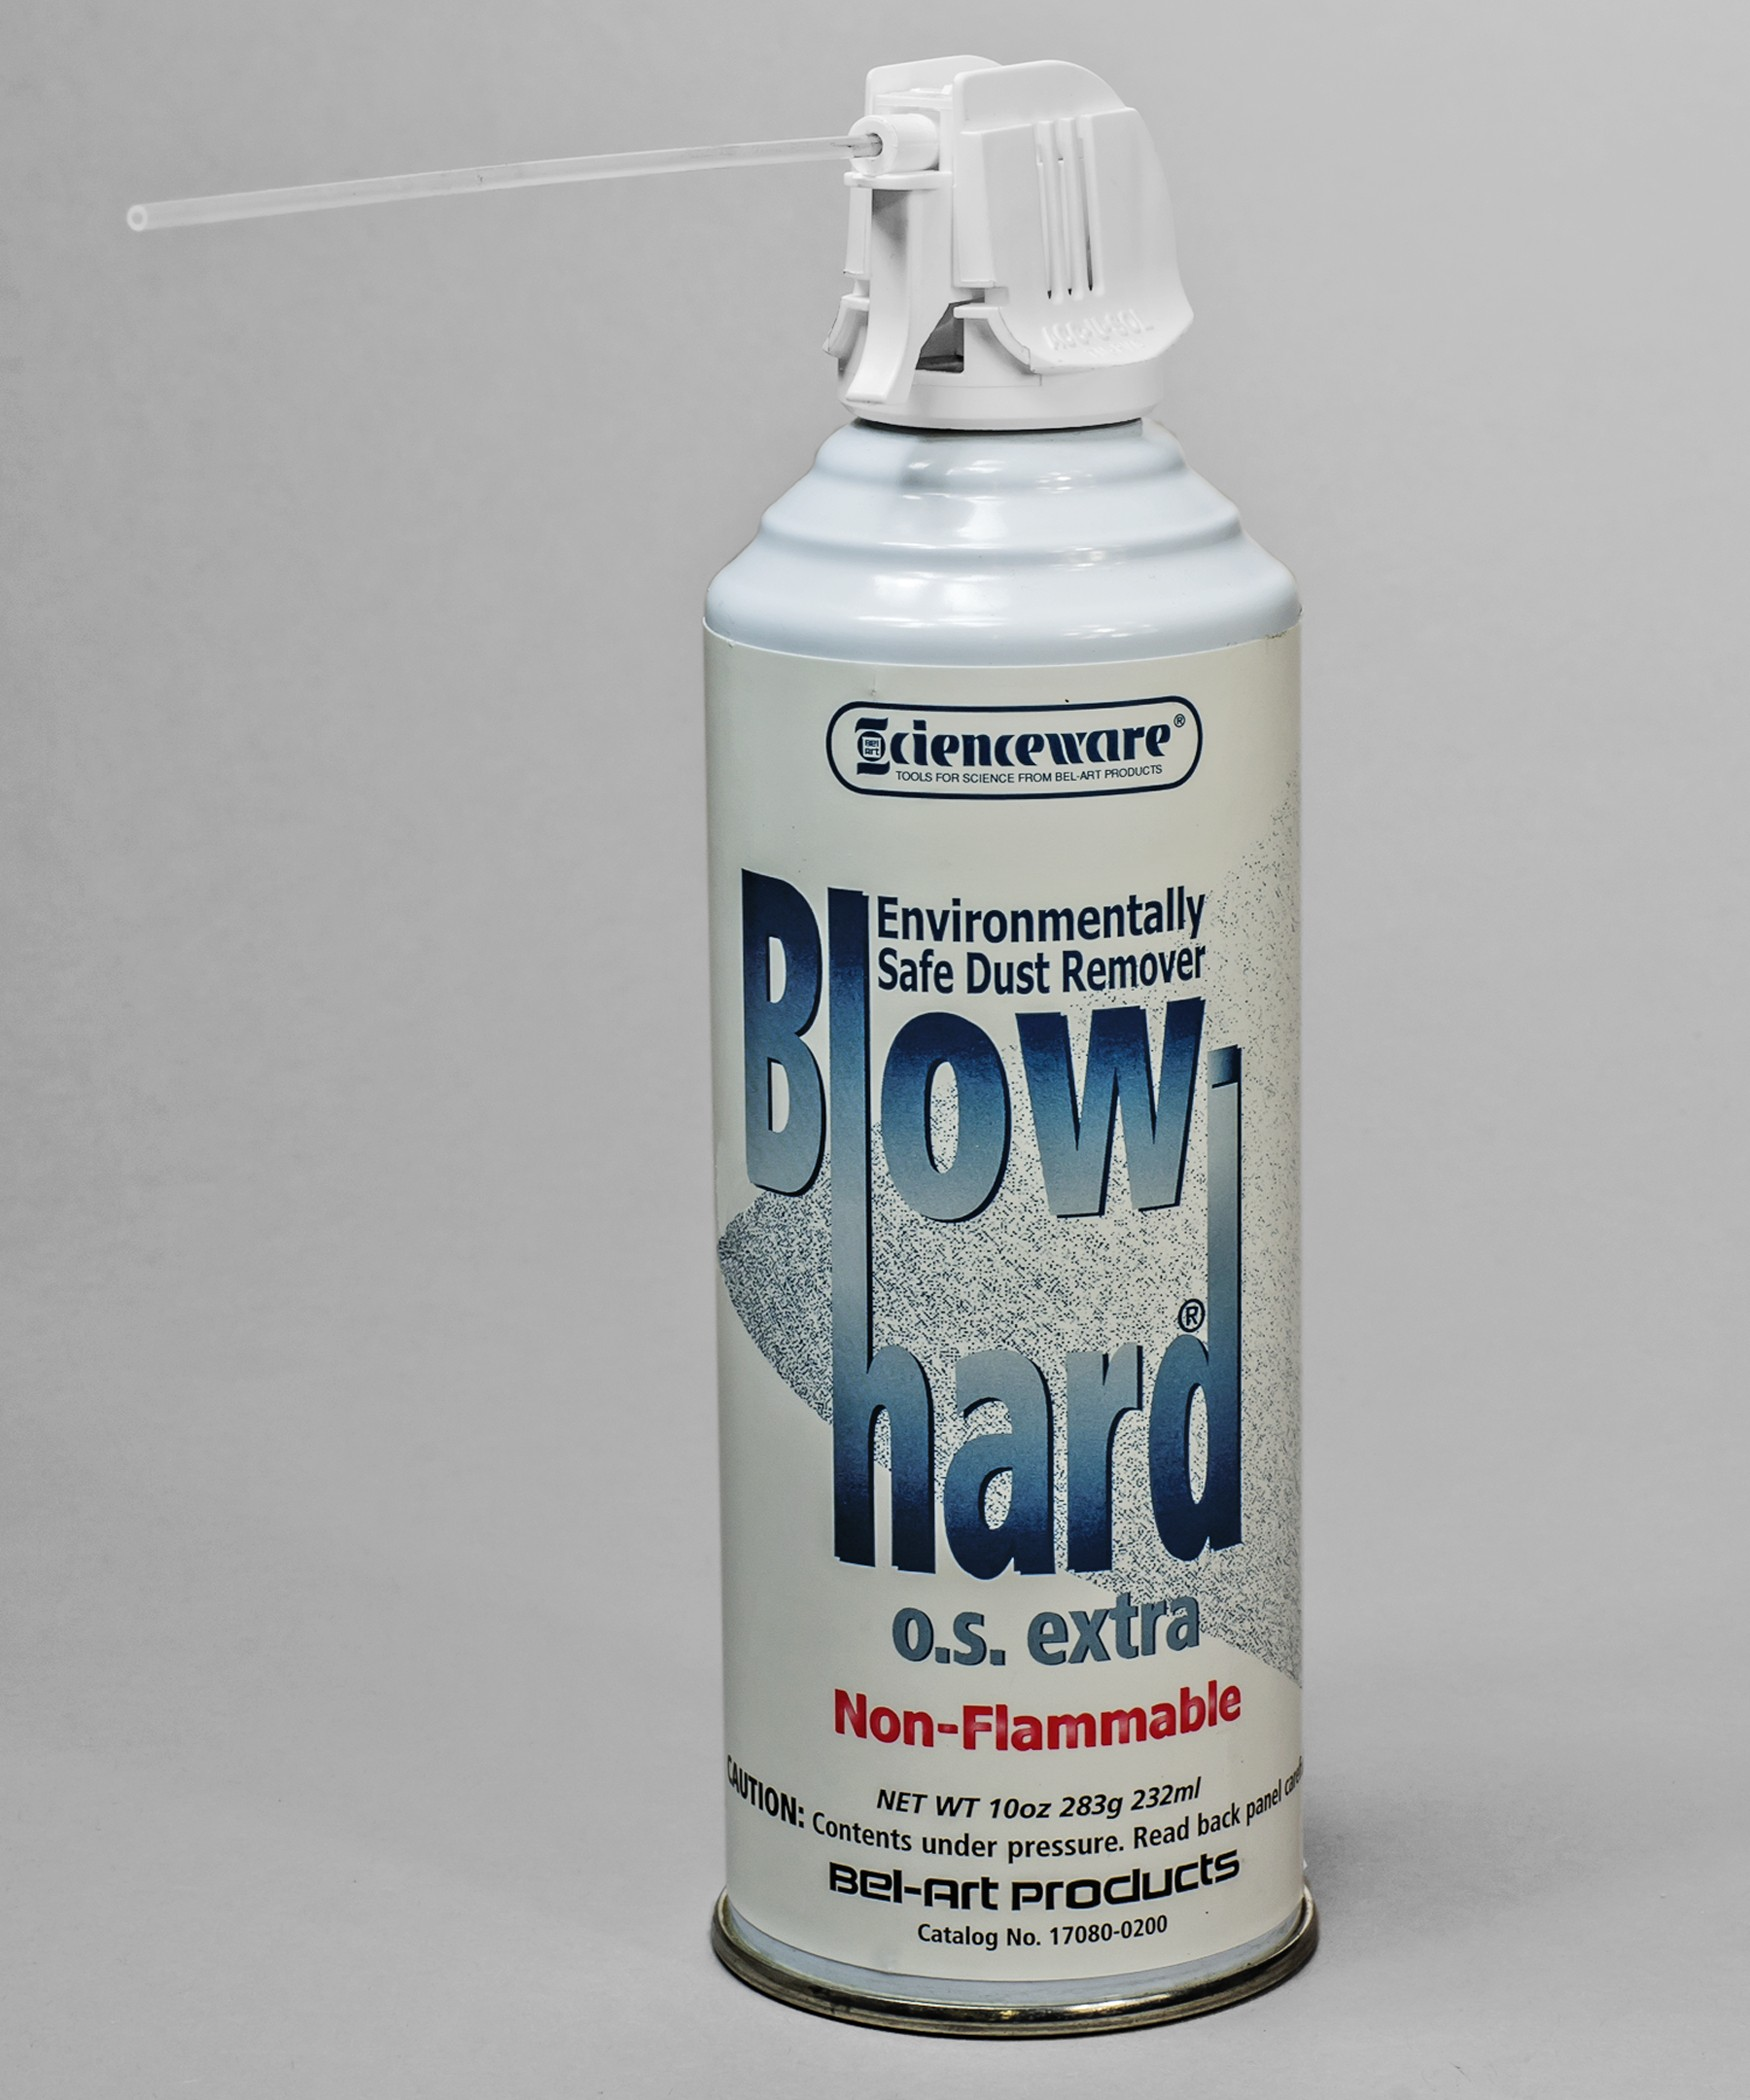 Blow-Hard O.S. Extra Dust Remover